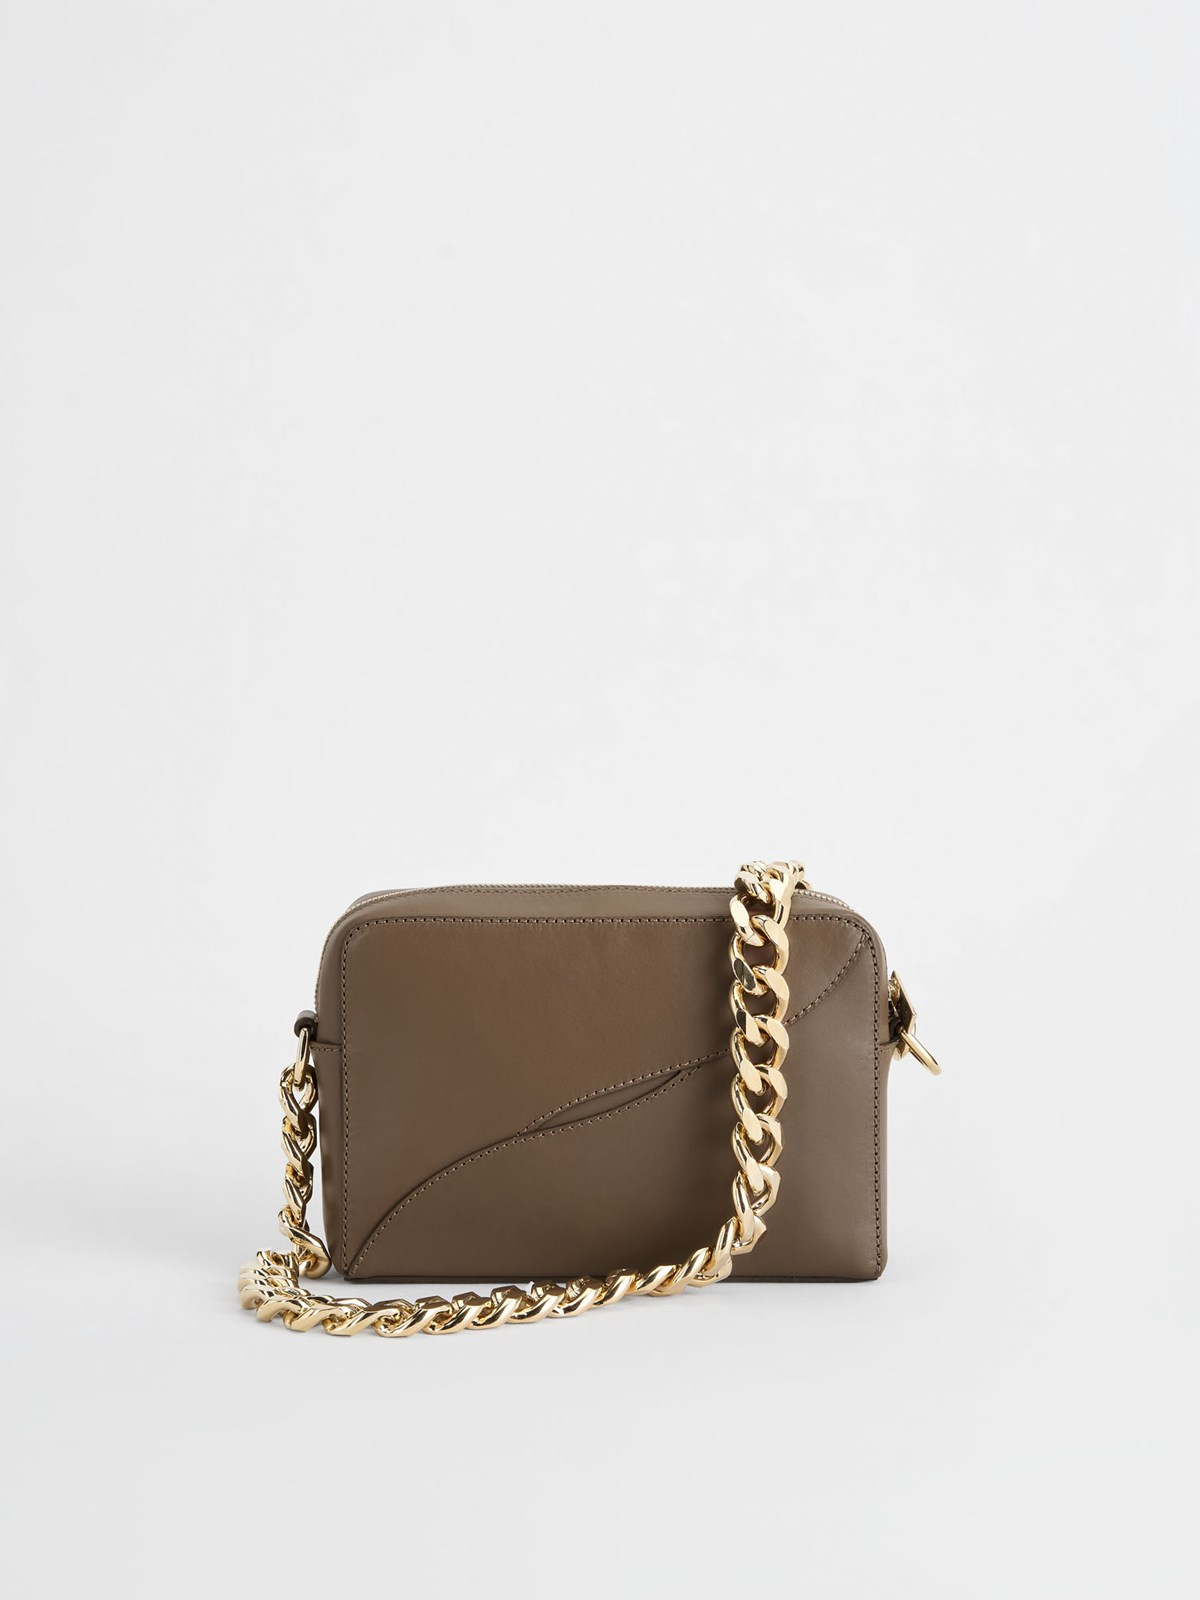 Ginosa Khaki Brown Shoulder bag